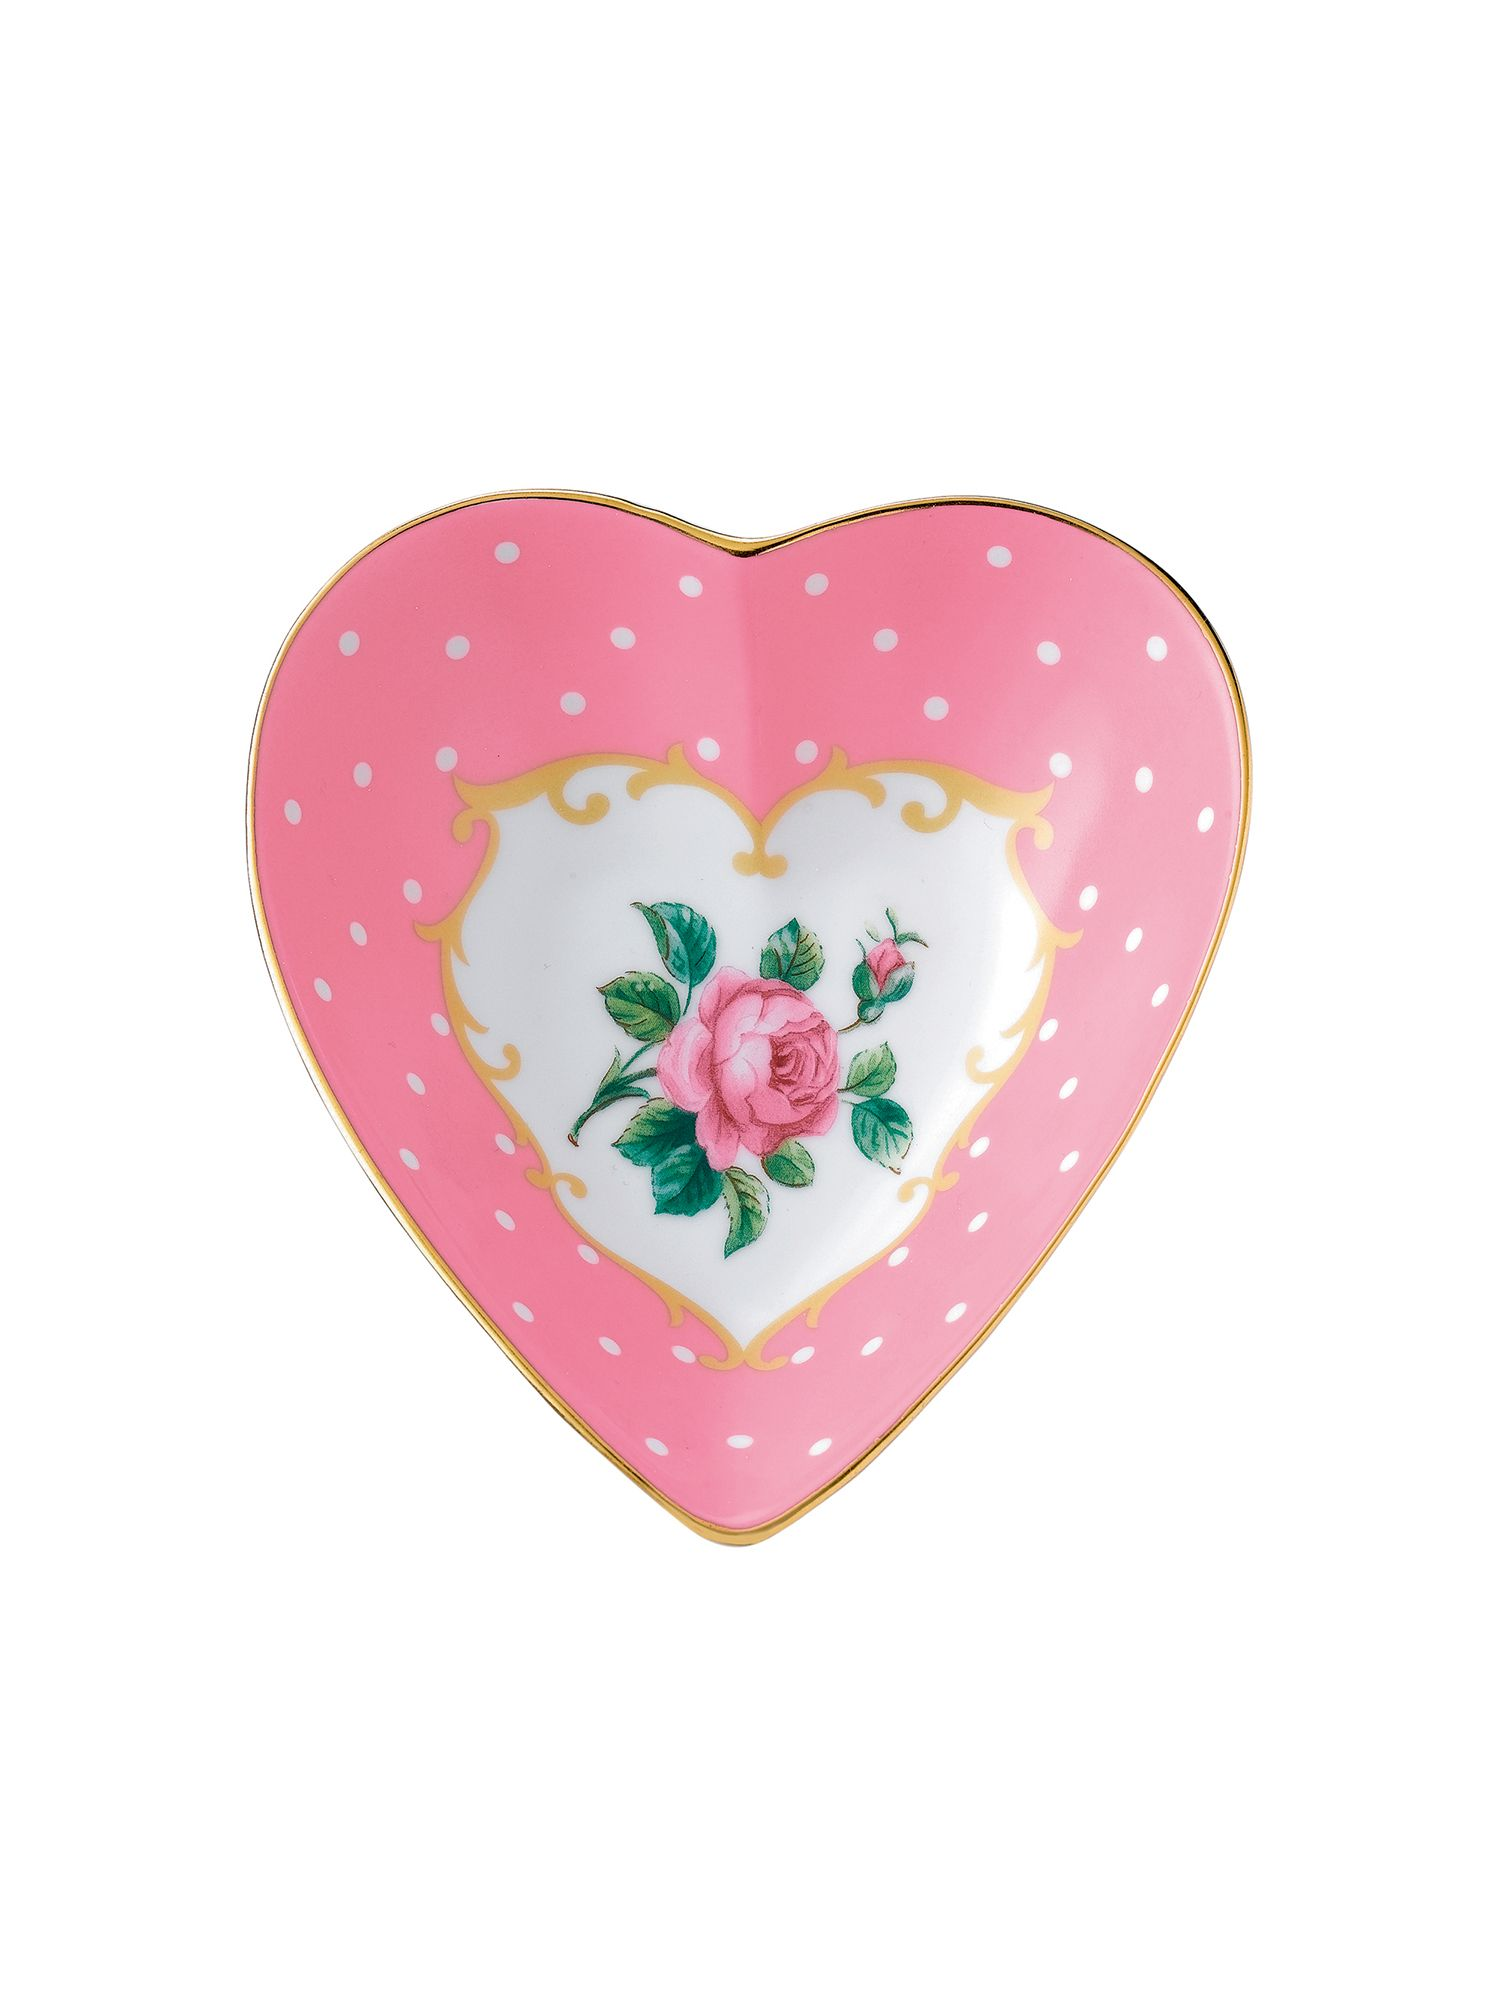 Cheeky pink ceramic heart tray